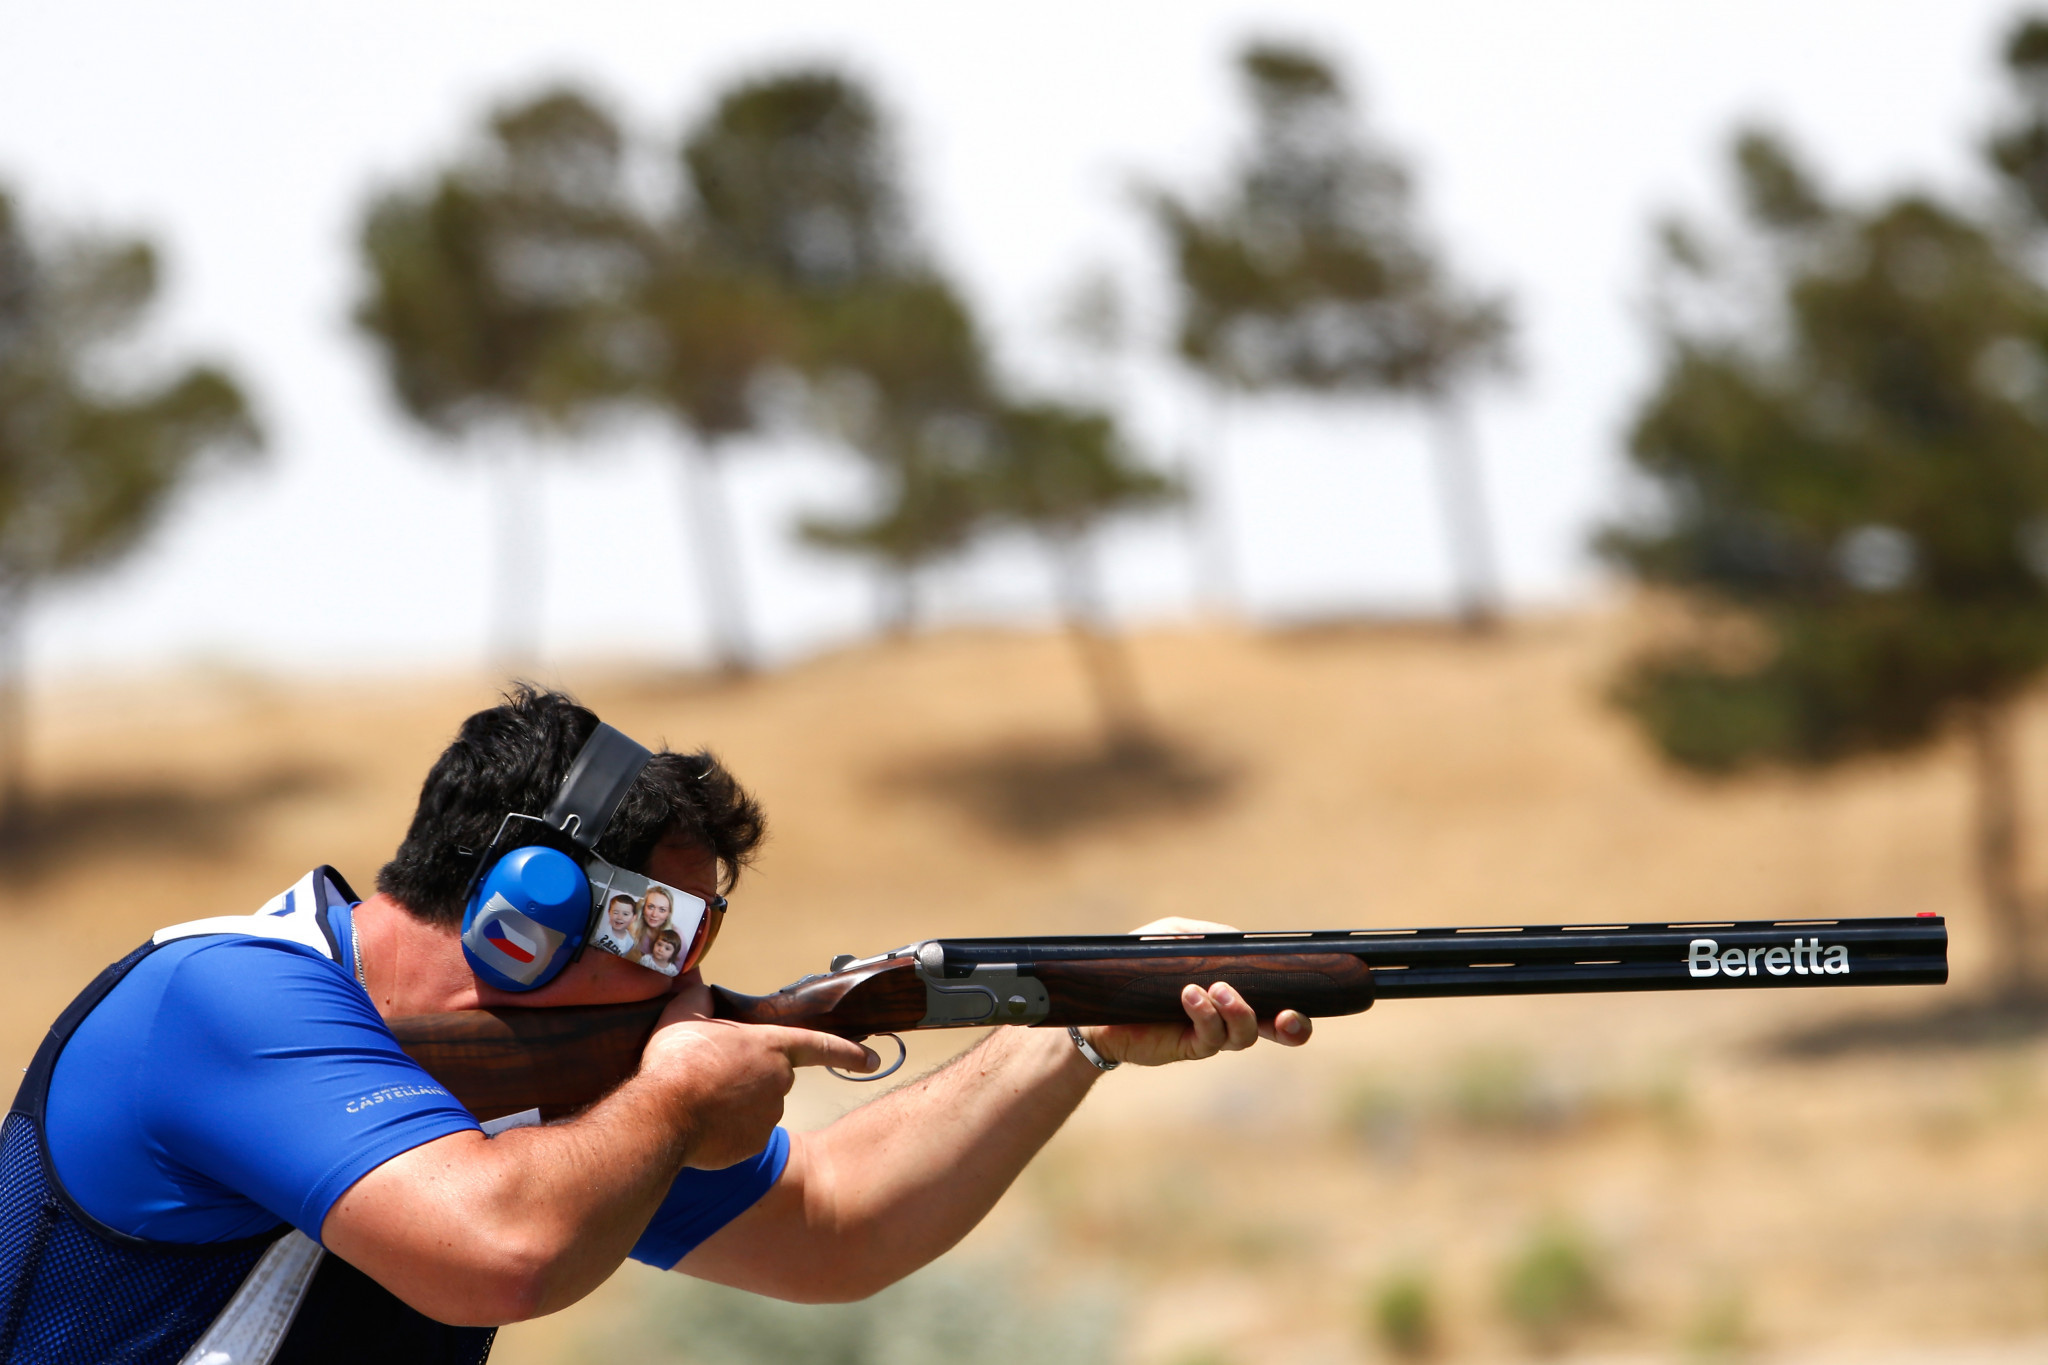 Lipták wins men's trap gold at European Championship Shotgun